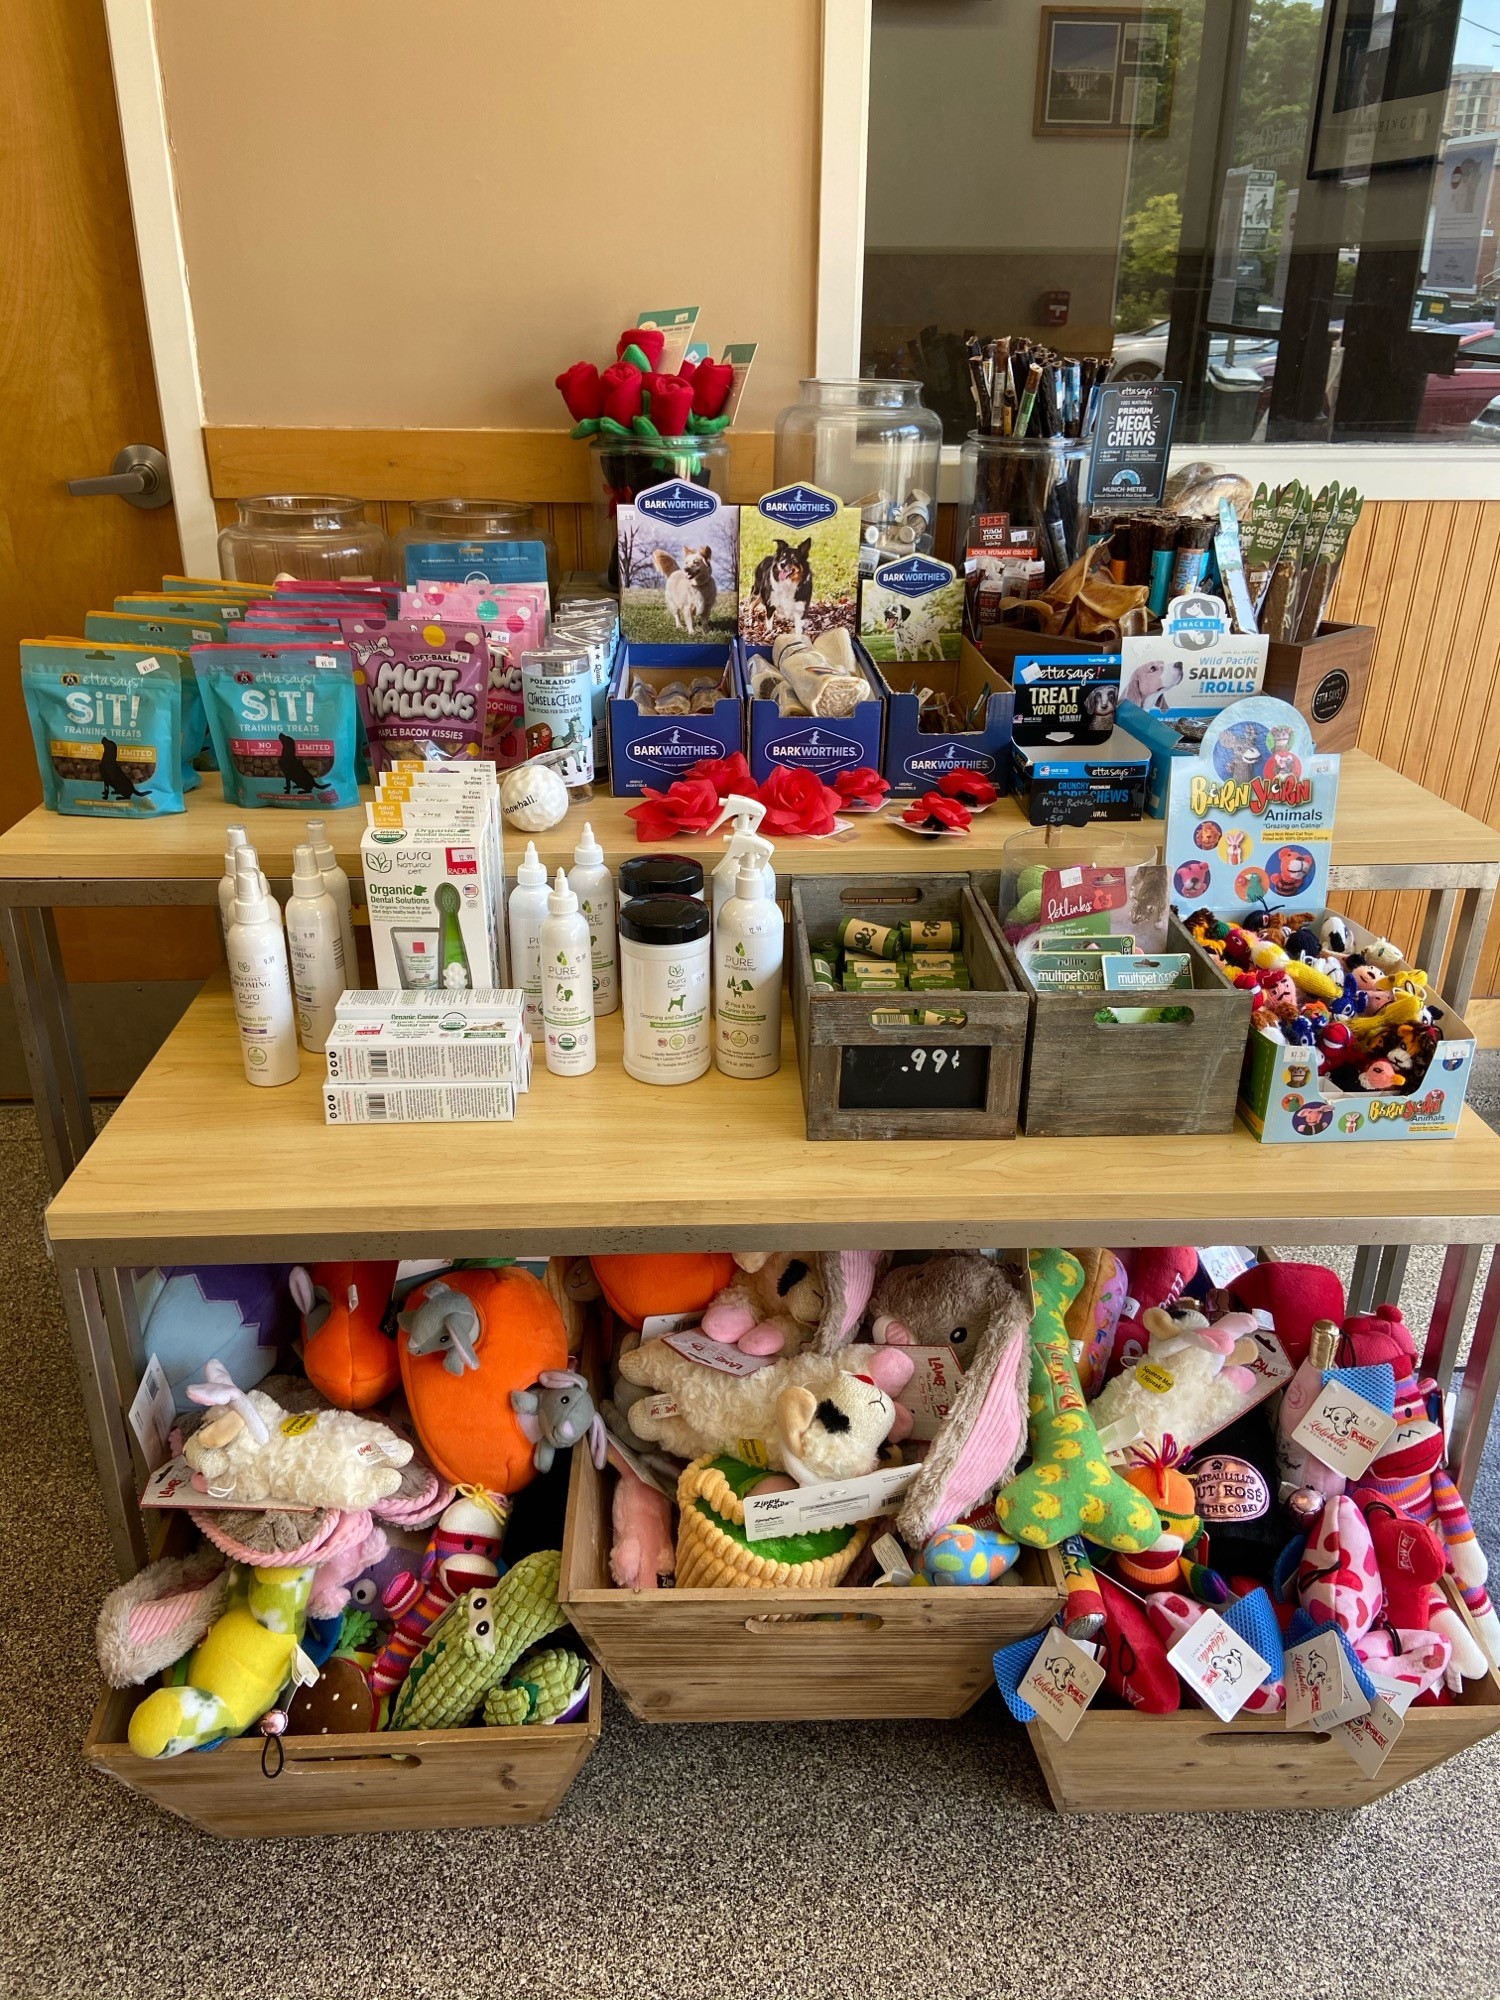 "Pet Toys, Chews, Treats, Wellness Products, and Gift Certificates<br><br>  <span style=""font-size: 22px; font-weight: 500;"">Come by your local Best Friends Pet Hotel to purchase popular pet care products and accessories, along with plush toys stocked for every day and holiday, an array of chew toys and treats, gift certificates, and more goodies!</span>"